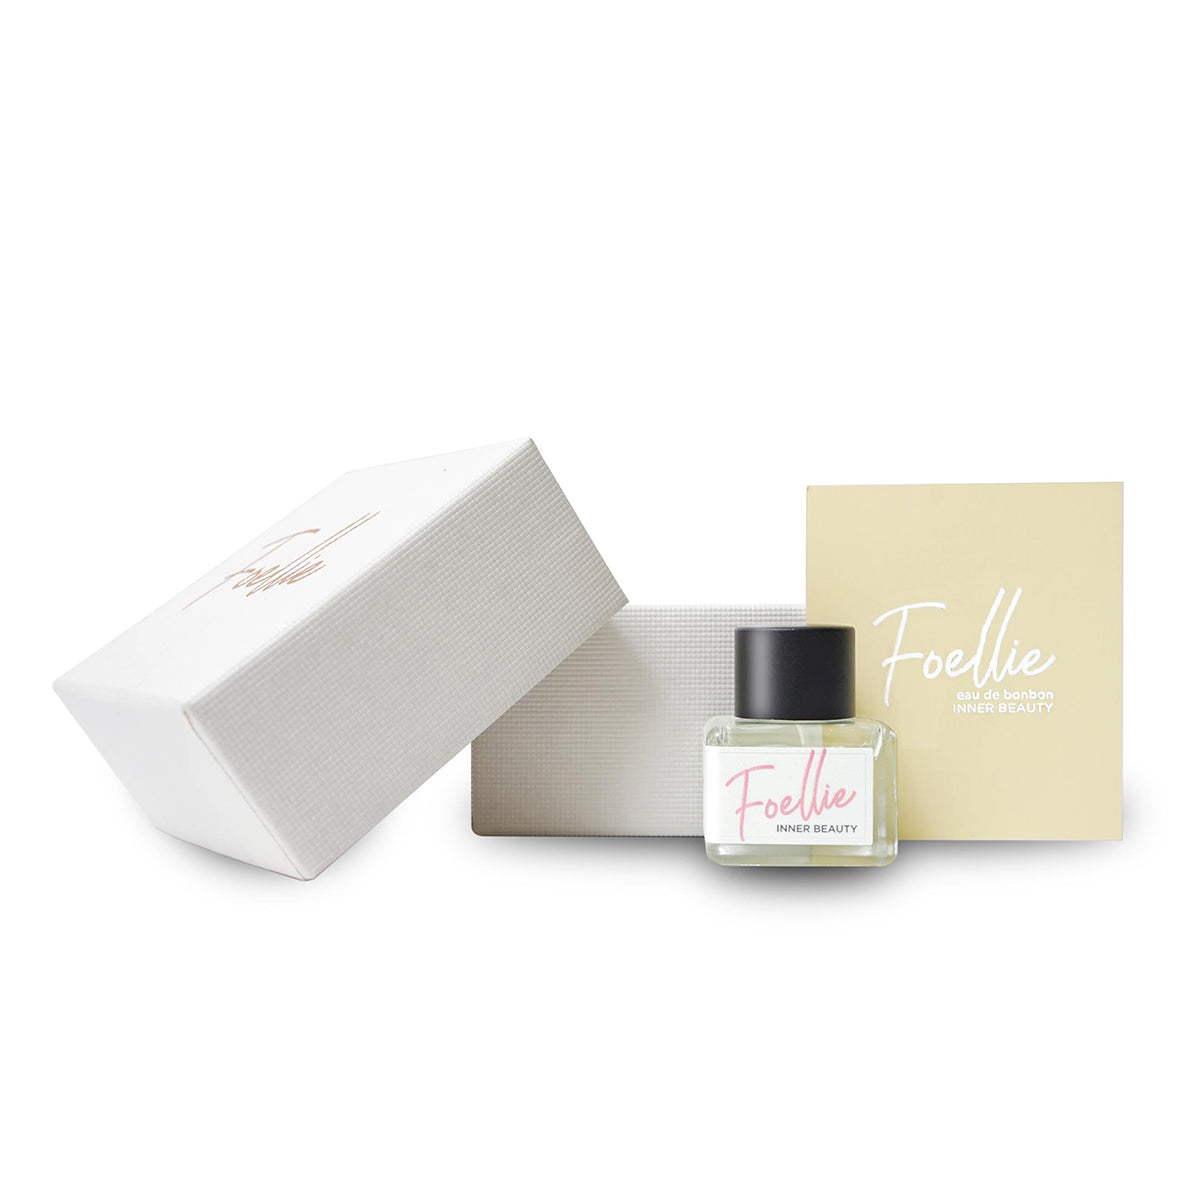 Foellie Women's Underwear Perfume - Inner Beauty - Sweet Peach Scent